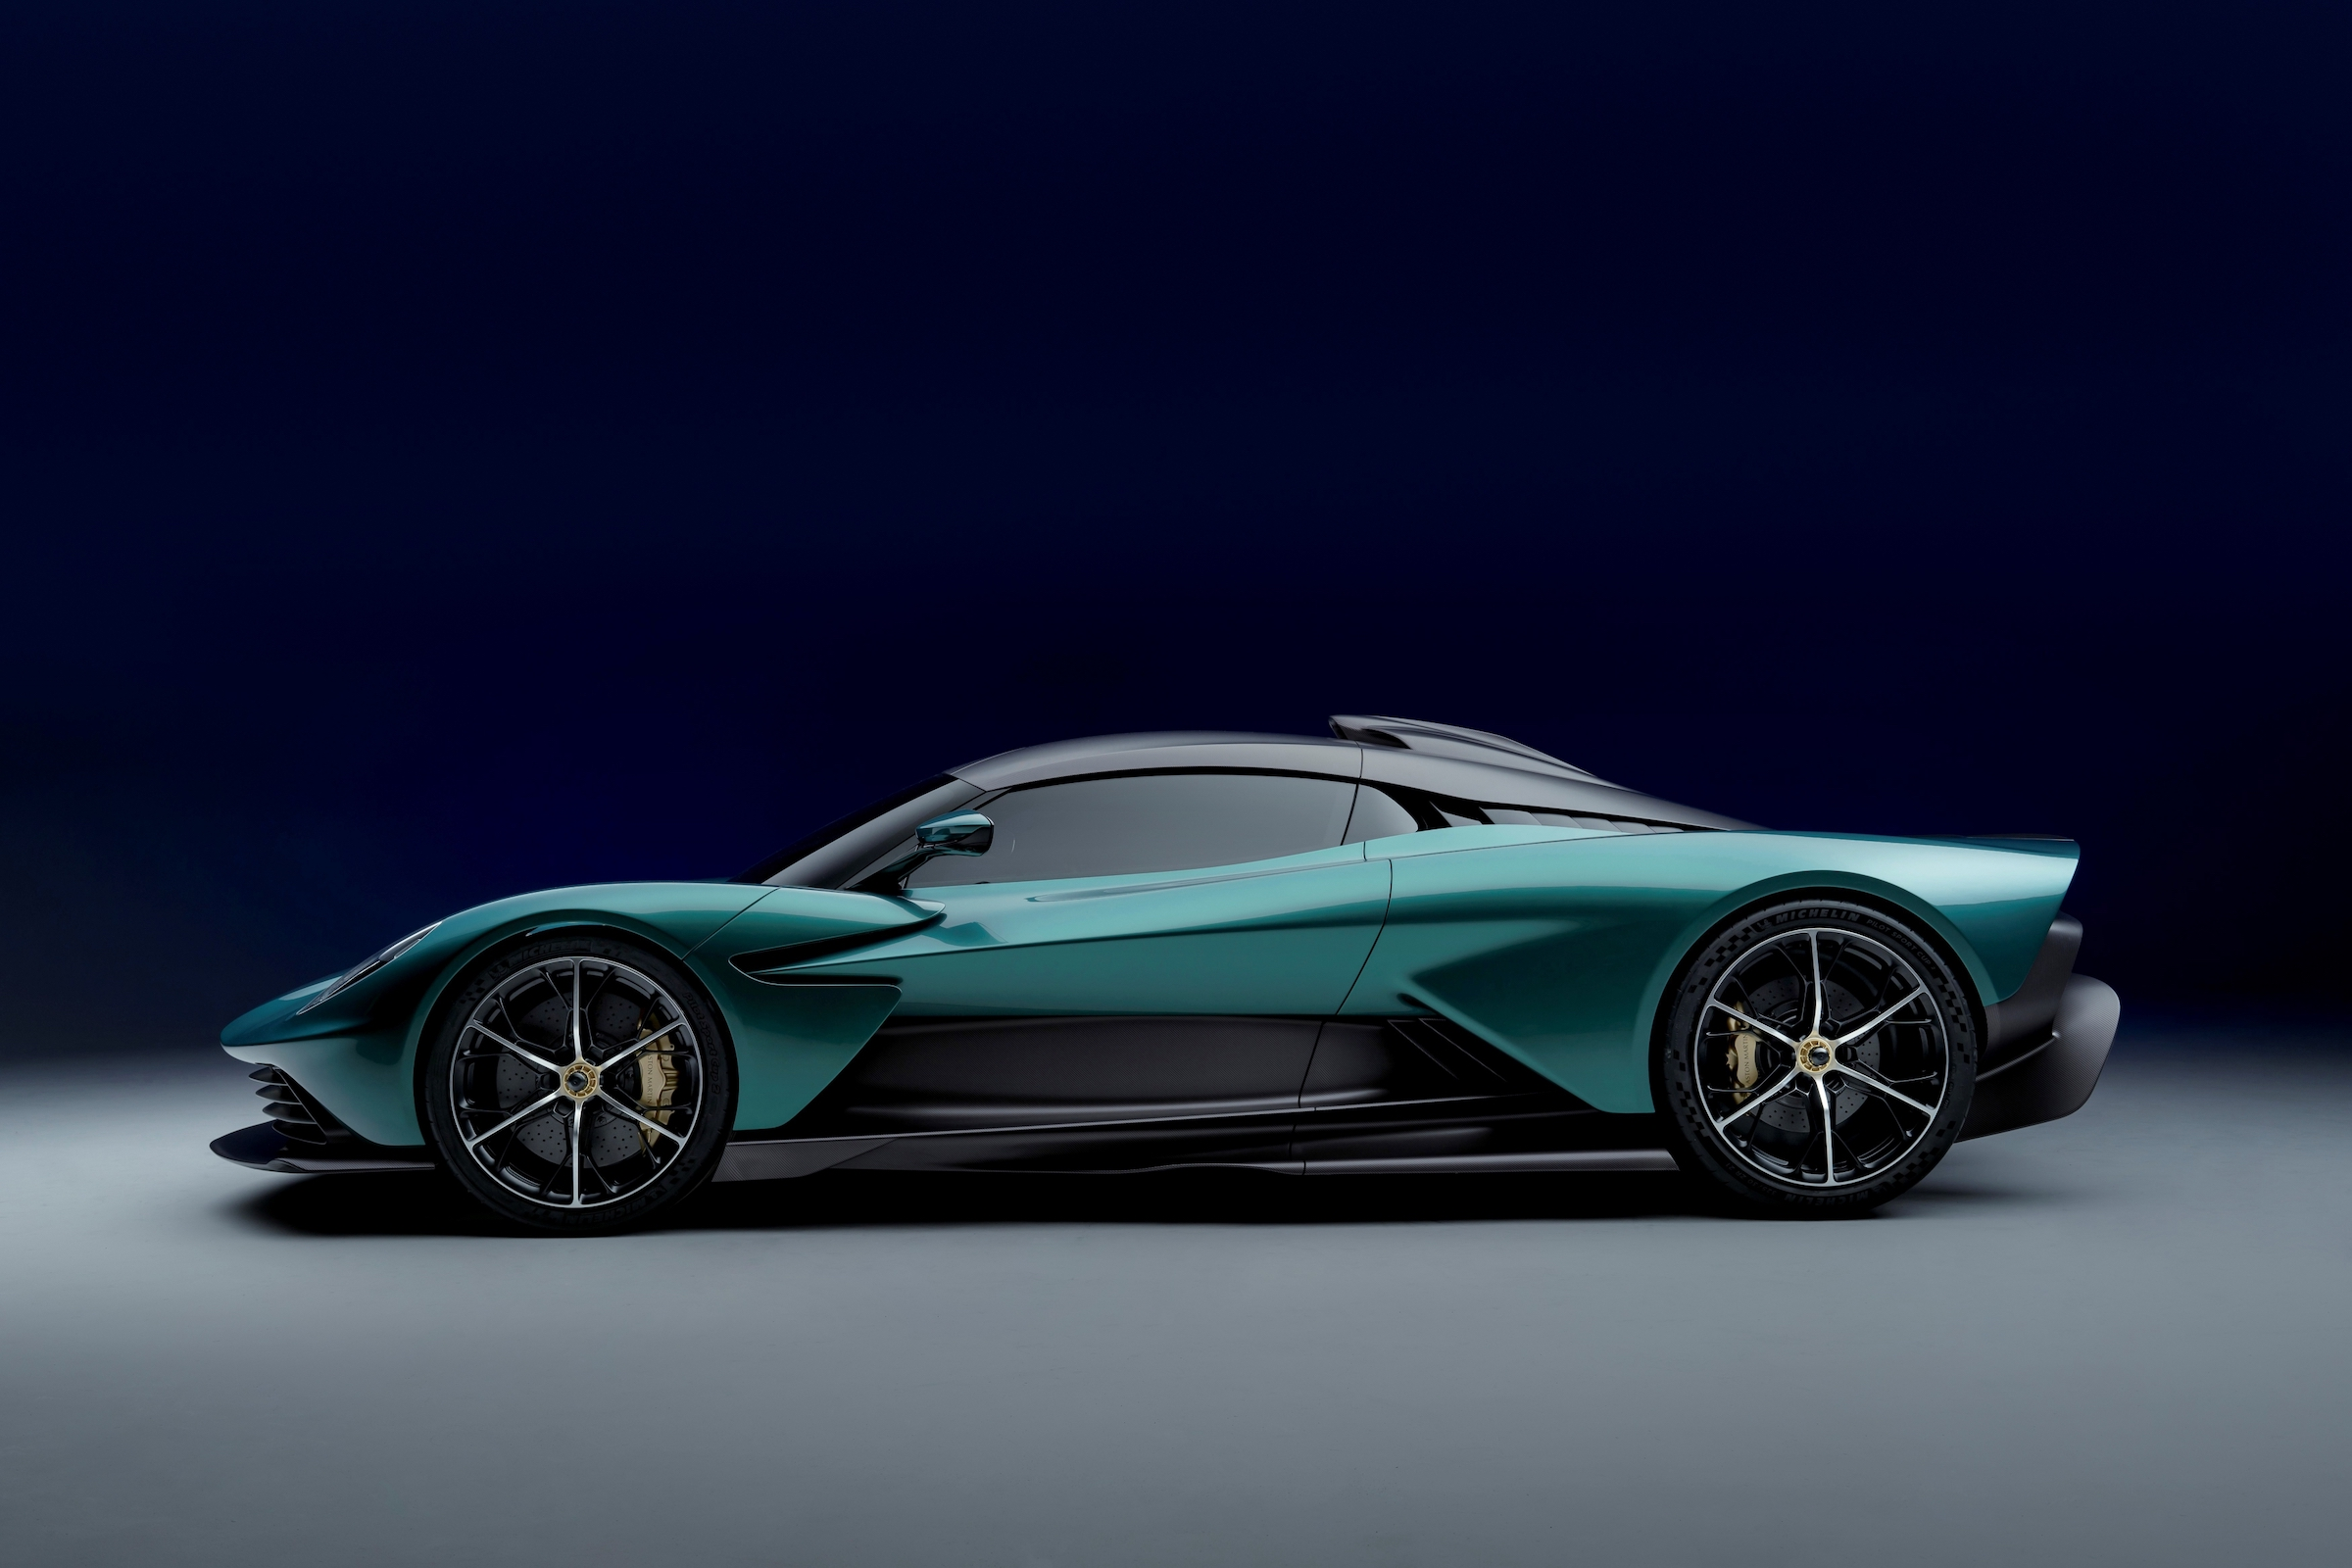 Path to Valhalla nearly complete as Aston Martin reveals 937bhp supercar